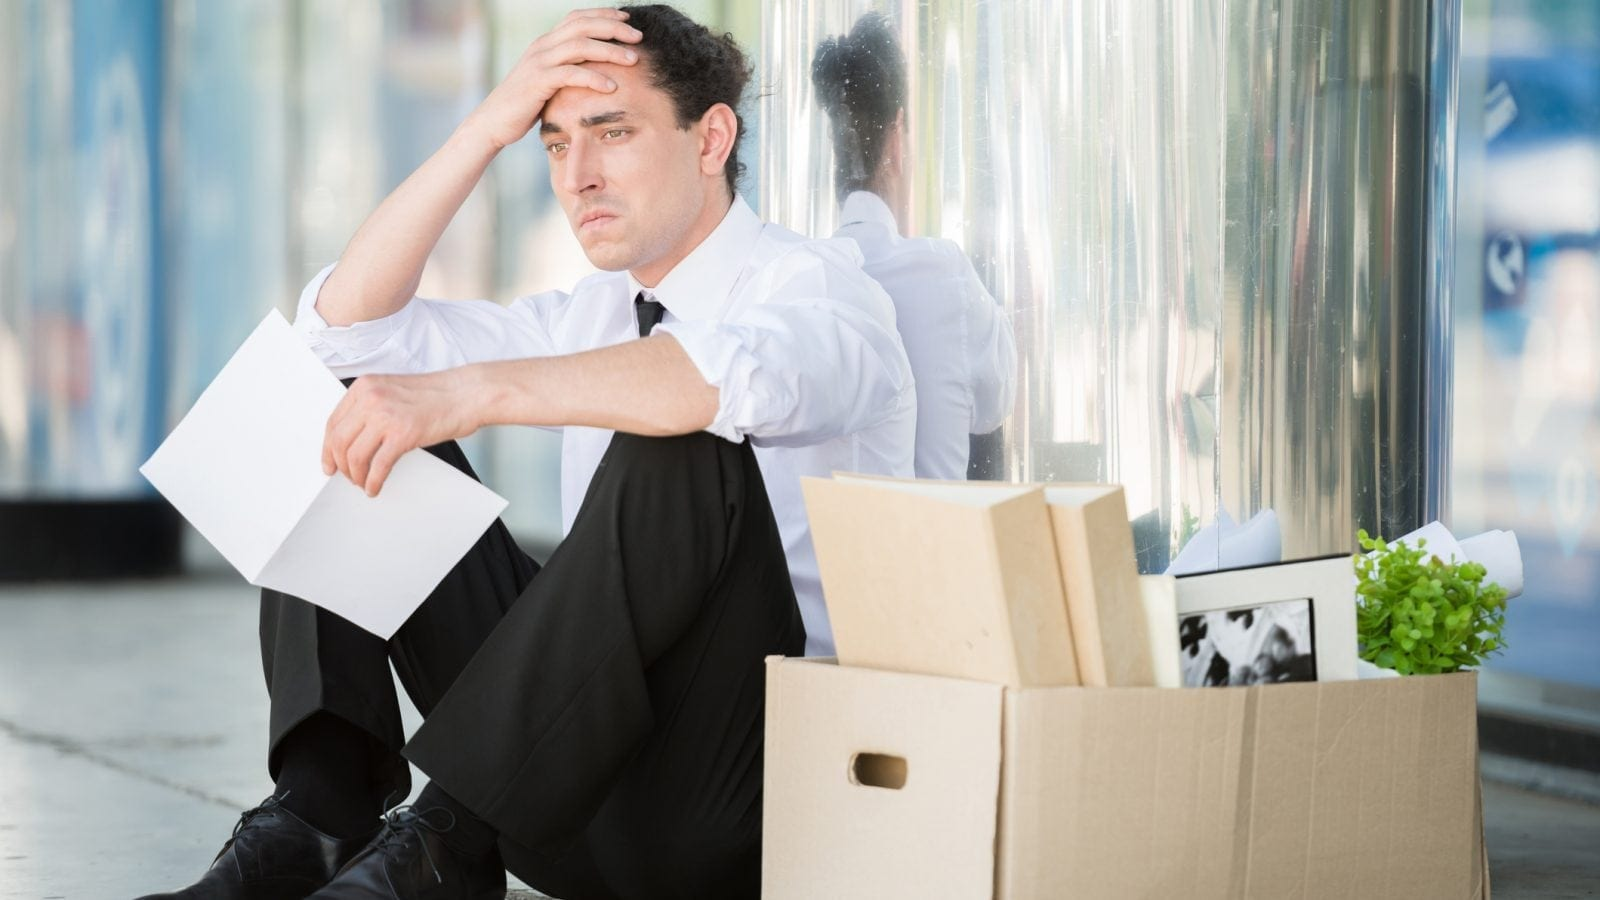 Man Losing His Job Stock Photo